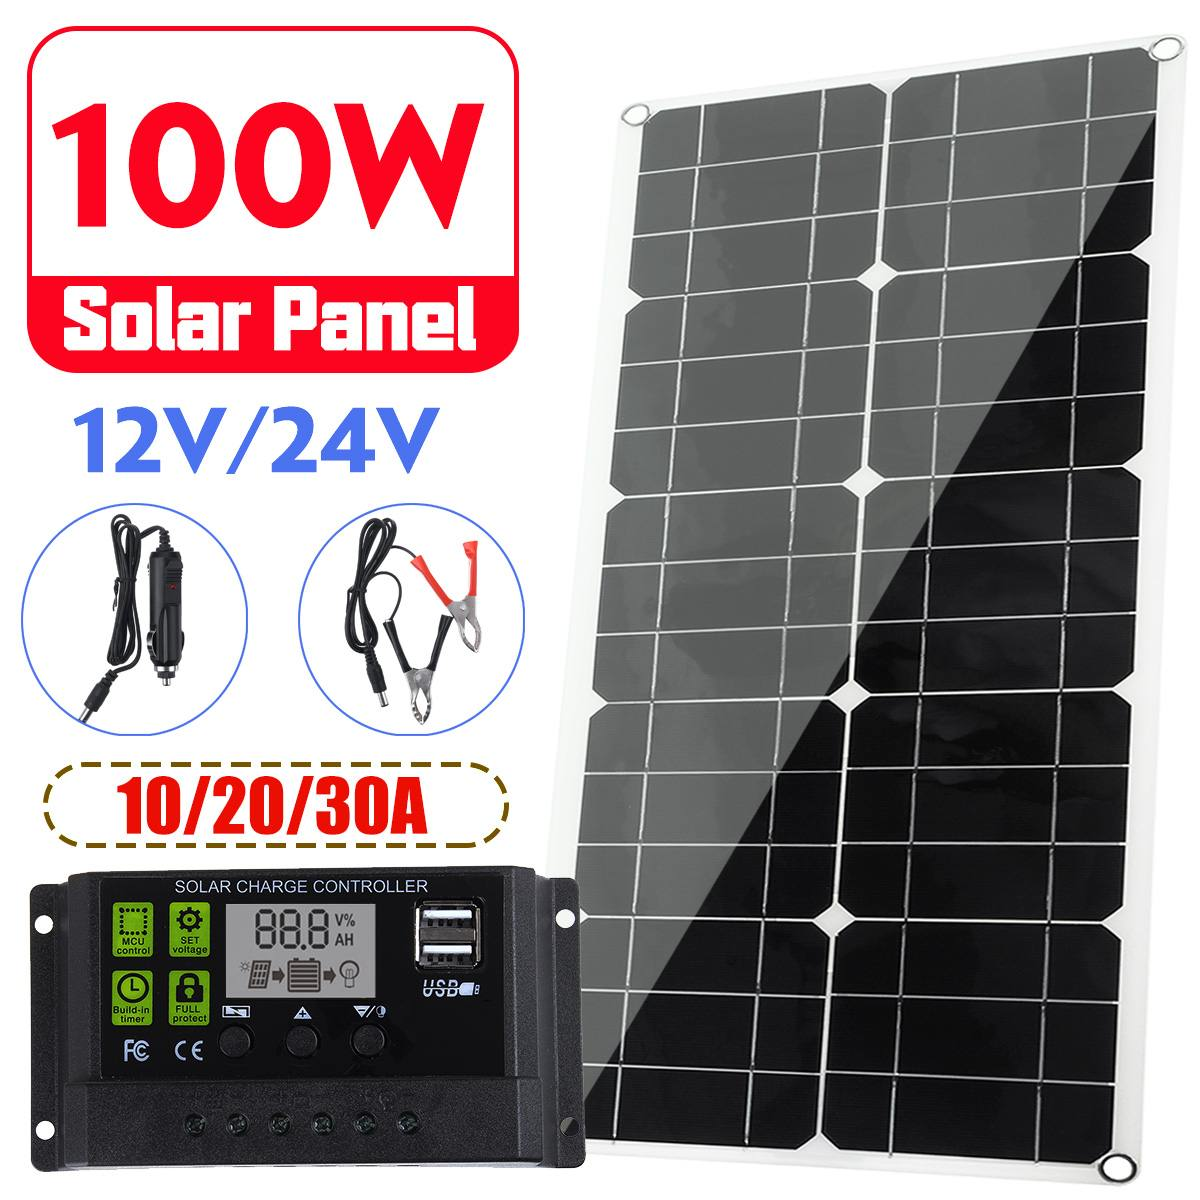 100W <font><b>Solar</b></font> Panel 12V/24V LCD Display <font><b>PWM</b></font> <font><b>Solar</b></font> <font><b>Charge</b></font> <font><b>Controller</b></font> 2 Power Bank Board External Battery Charging USB Car Charger image